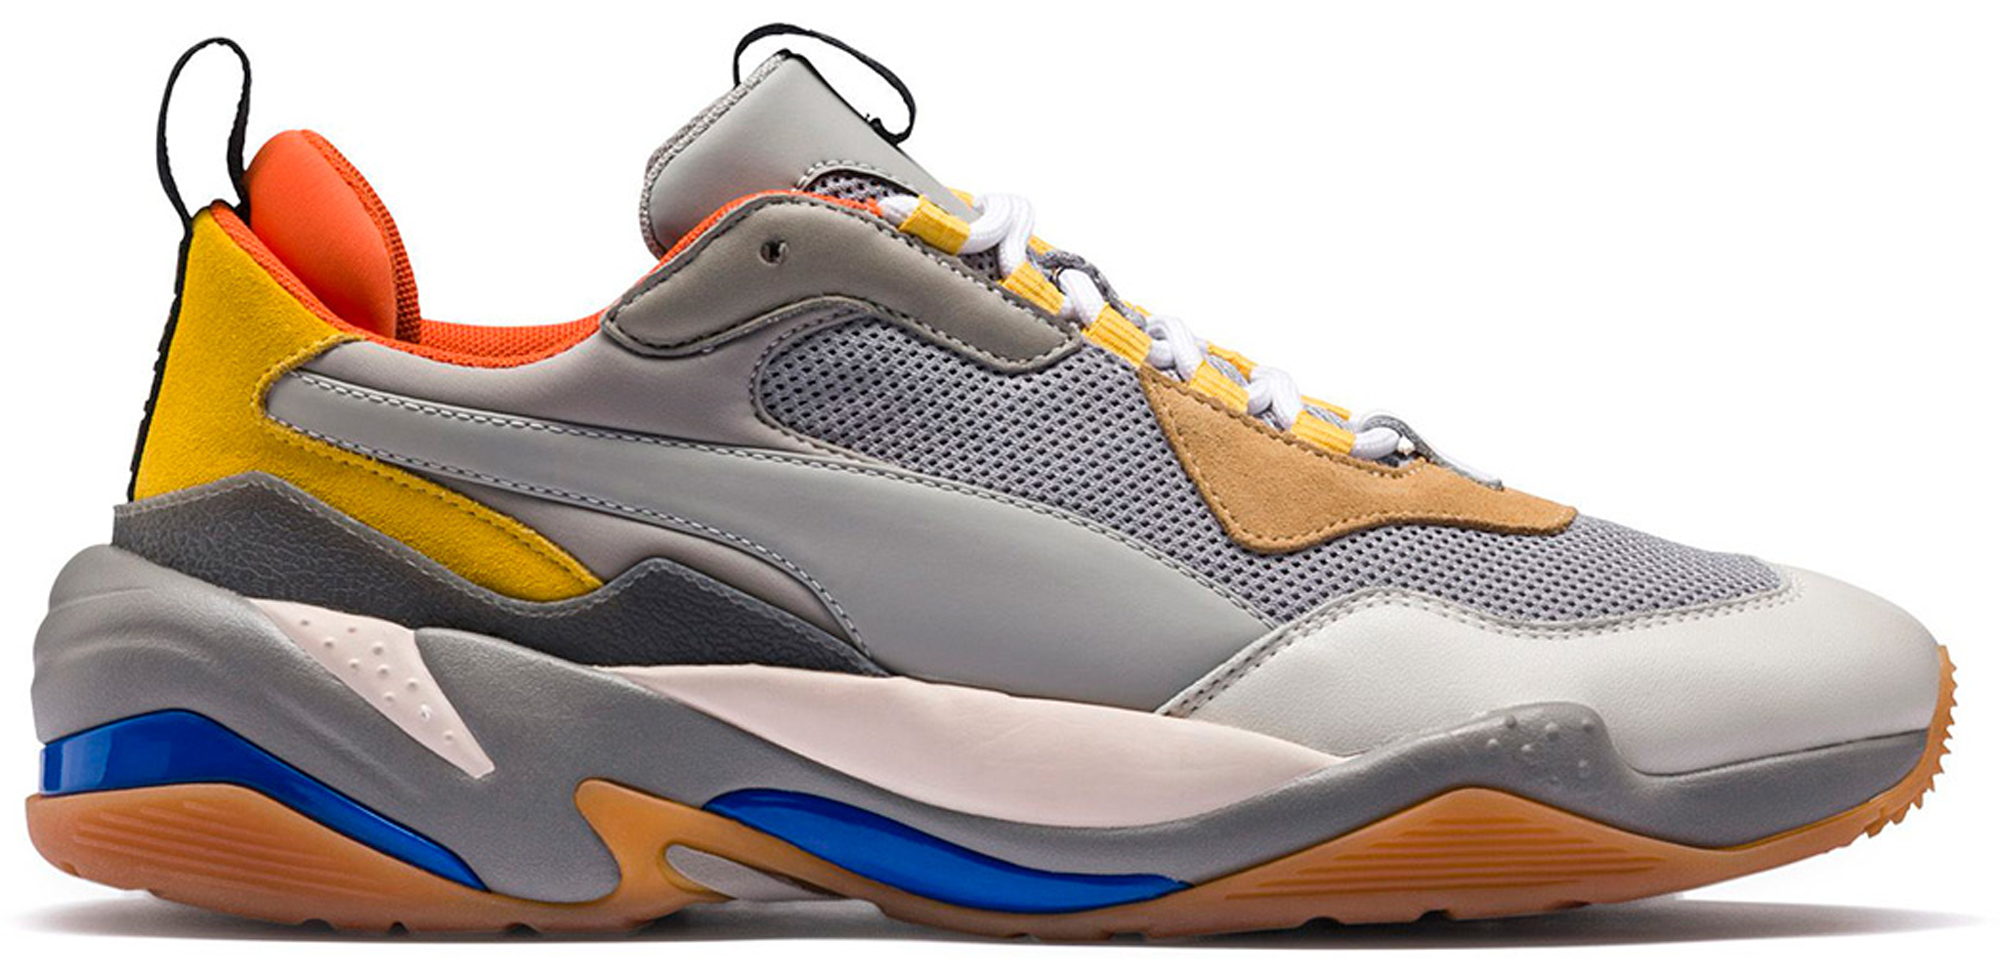 promo code for puma spectra yellow 50ddb ef937